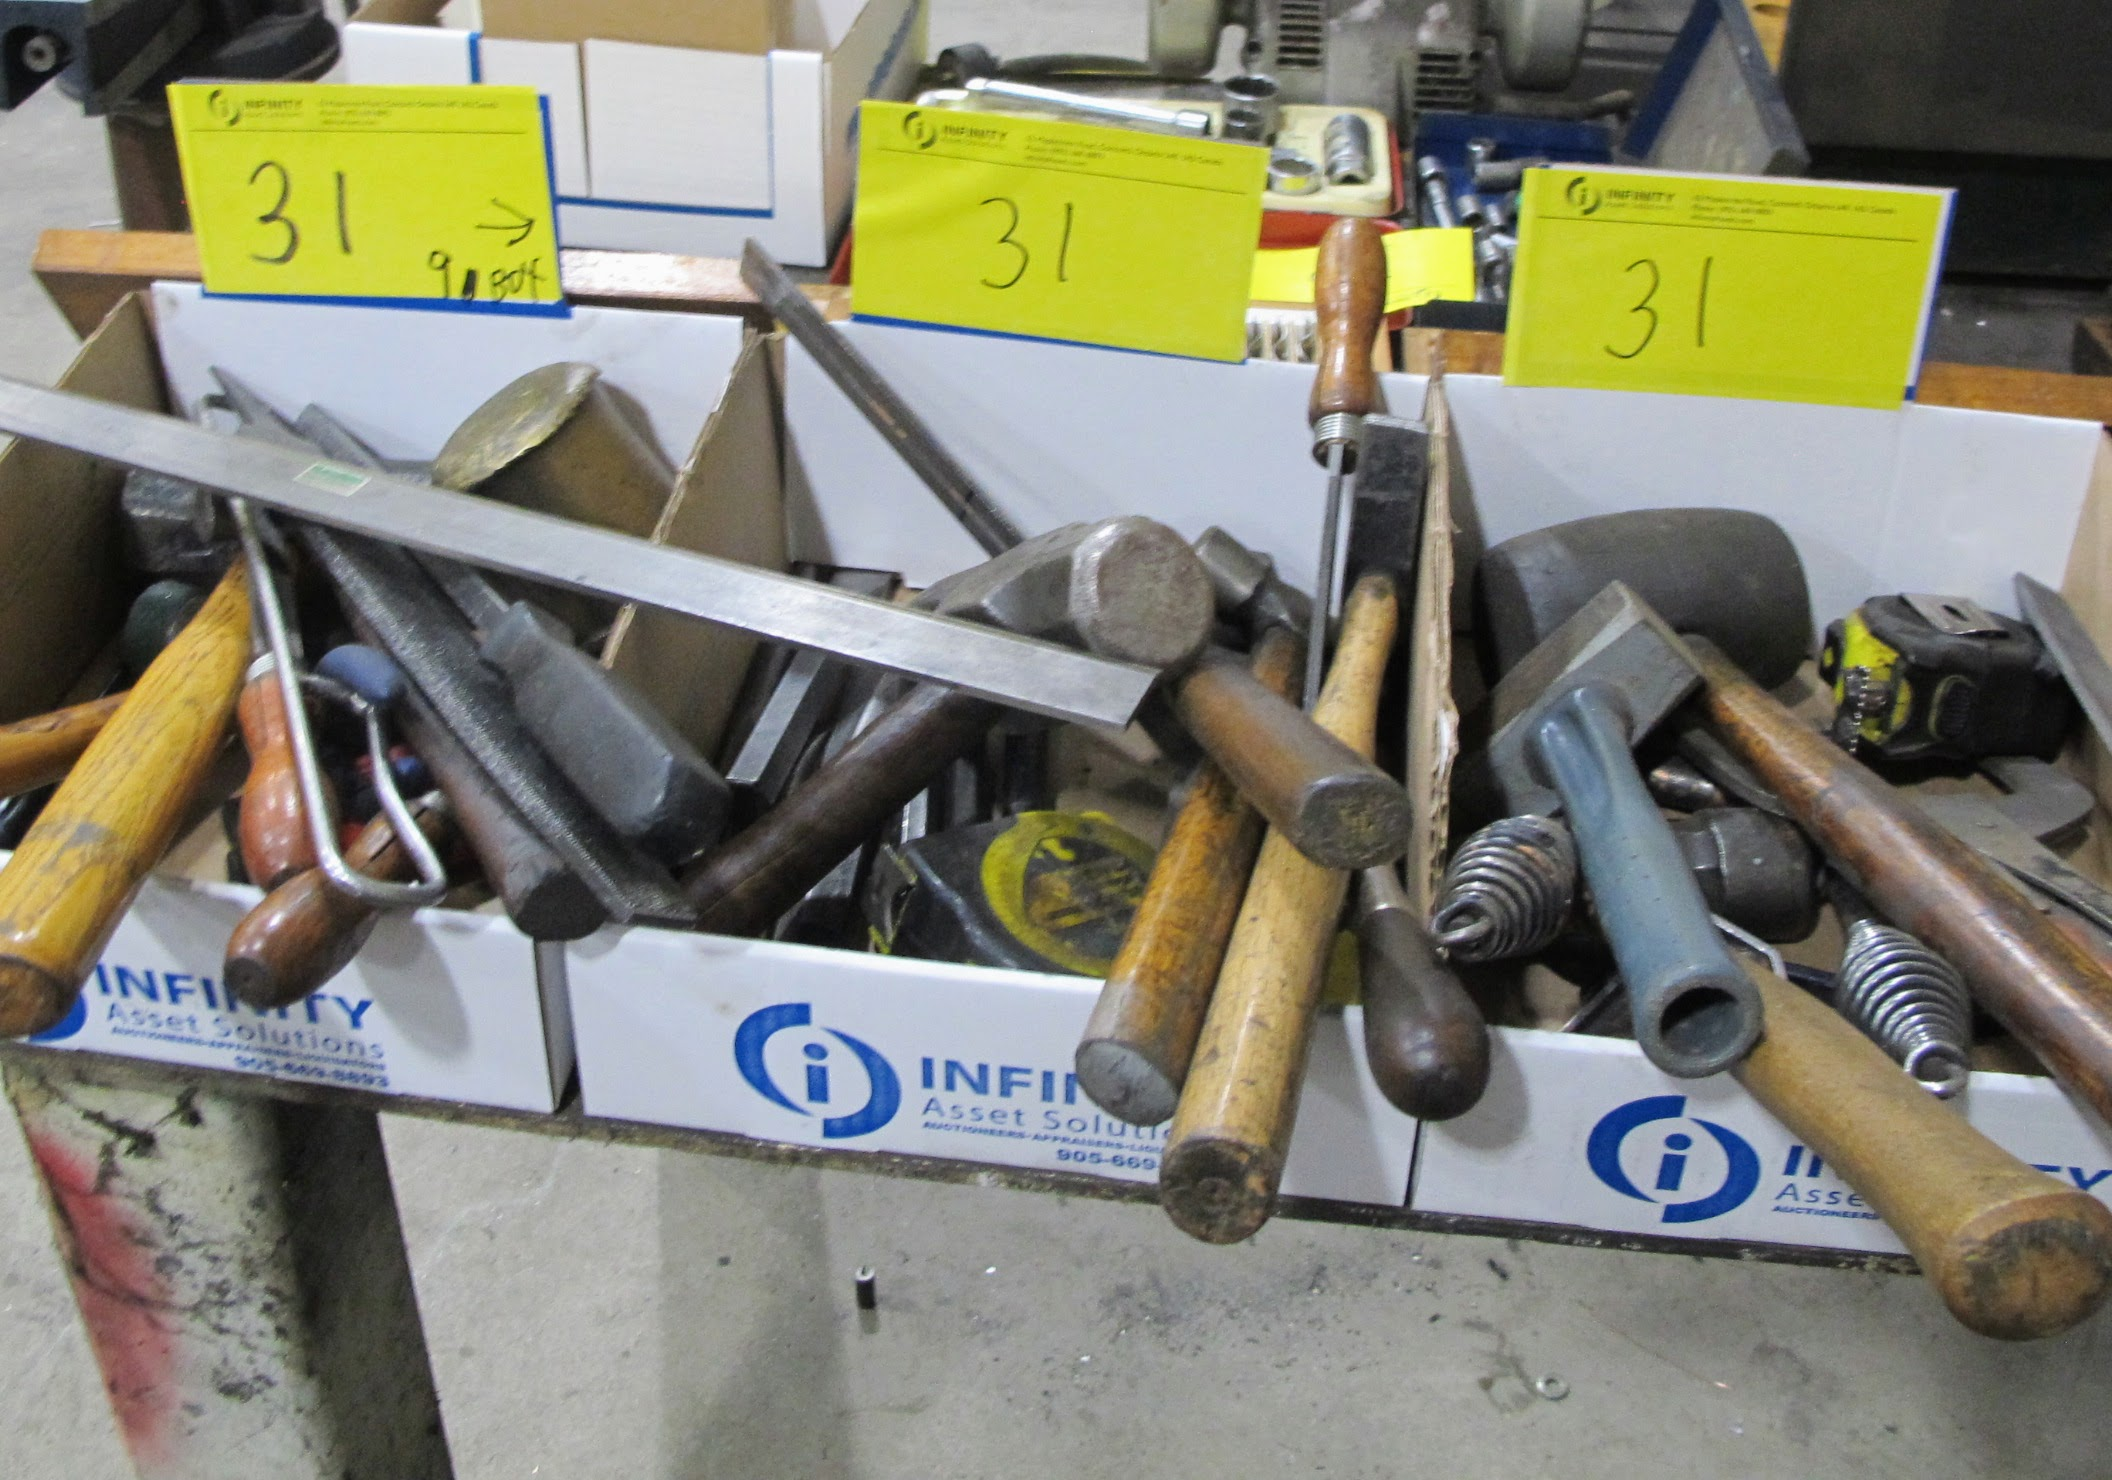 LOT OF 9 BOXES OF HAND TOOLS - Image 2 of 3